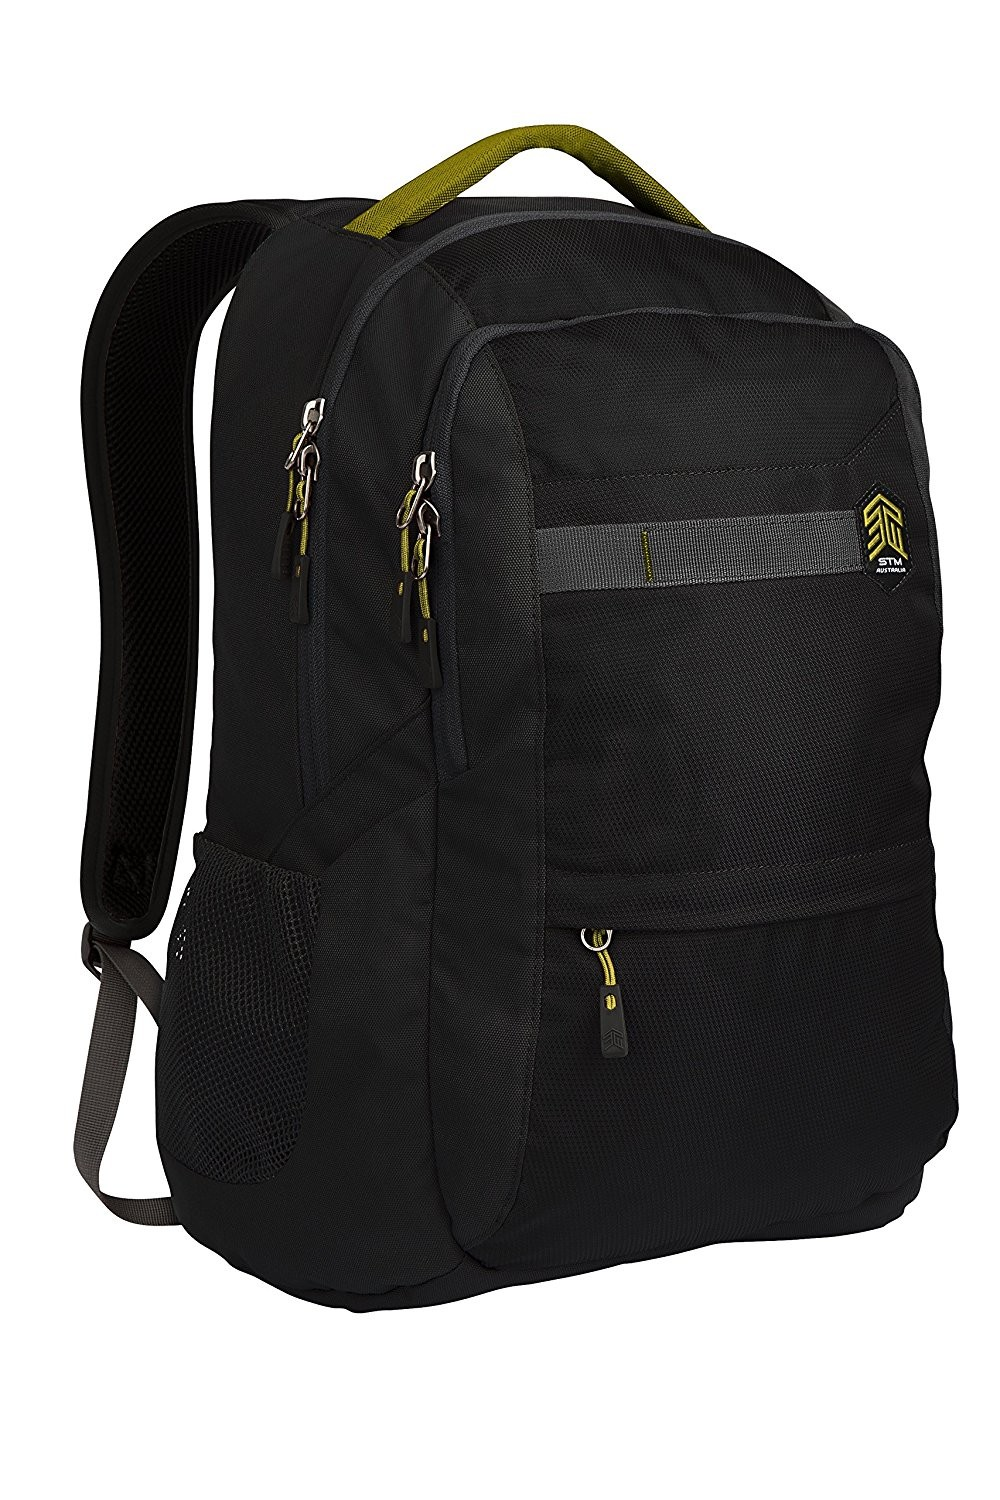 STM Trilogy backpack Polyester Black